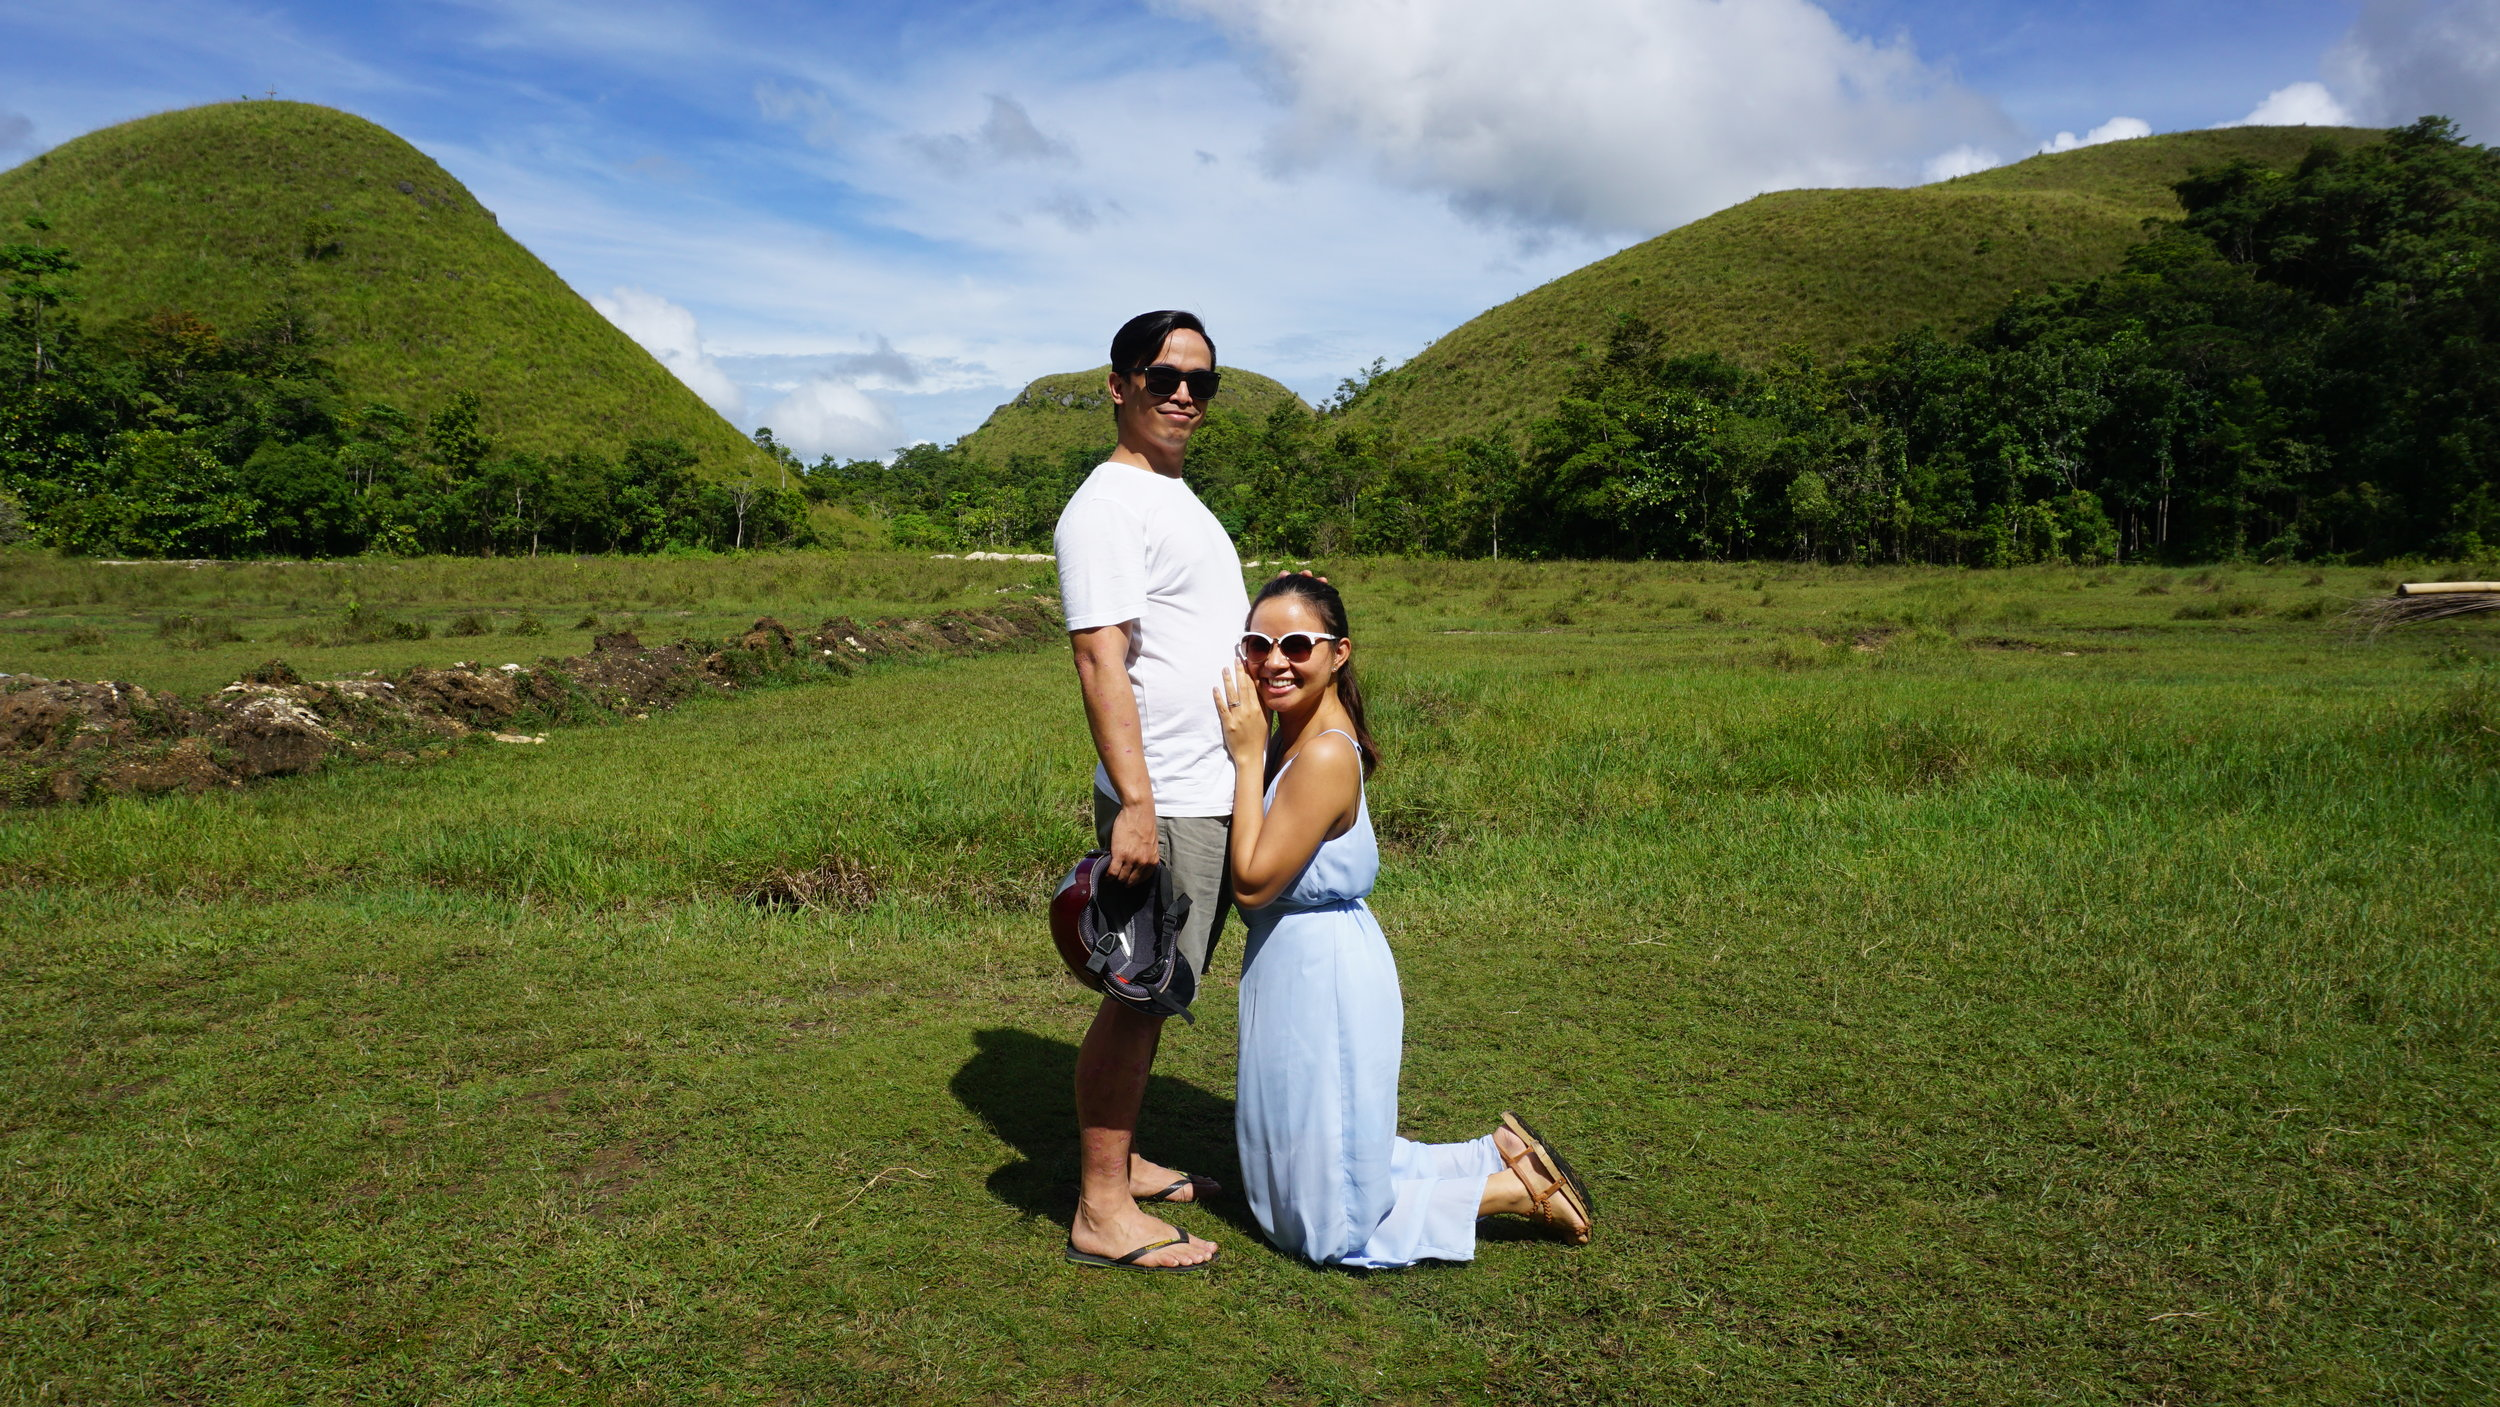 Our first ever maternity shoot hahaha! Taken in November last year by the so-called Pregnant Hill, Bohol :D